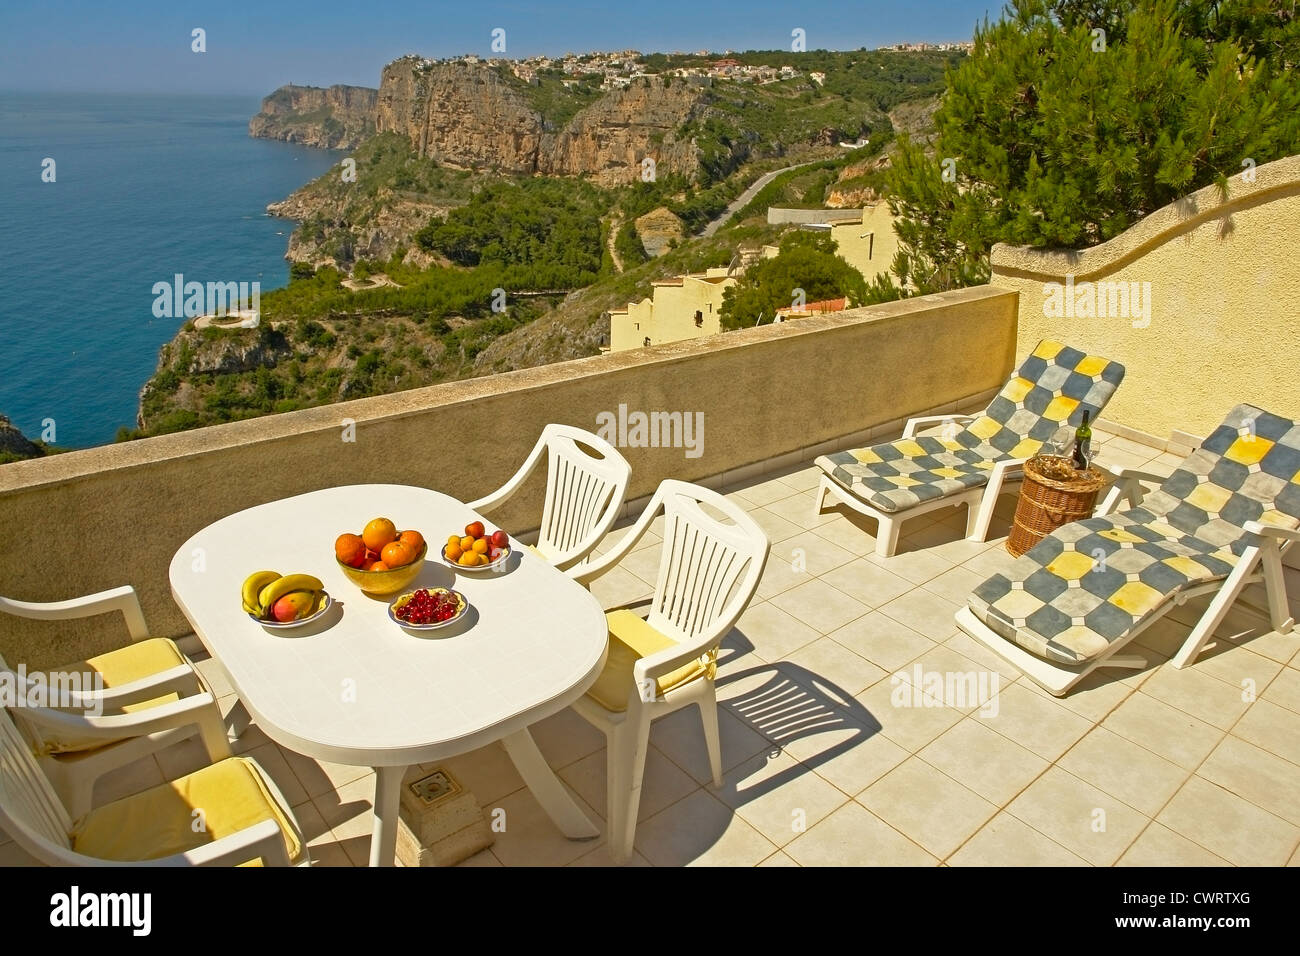 Apartment terrace on the Urbanisation (urbanizacion) Cumbre del Sol. Benitachell (Benitaxell). Costa Blanca Spain - Stock Image